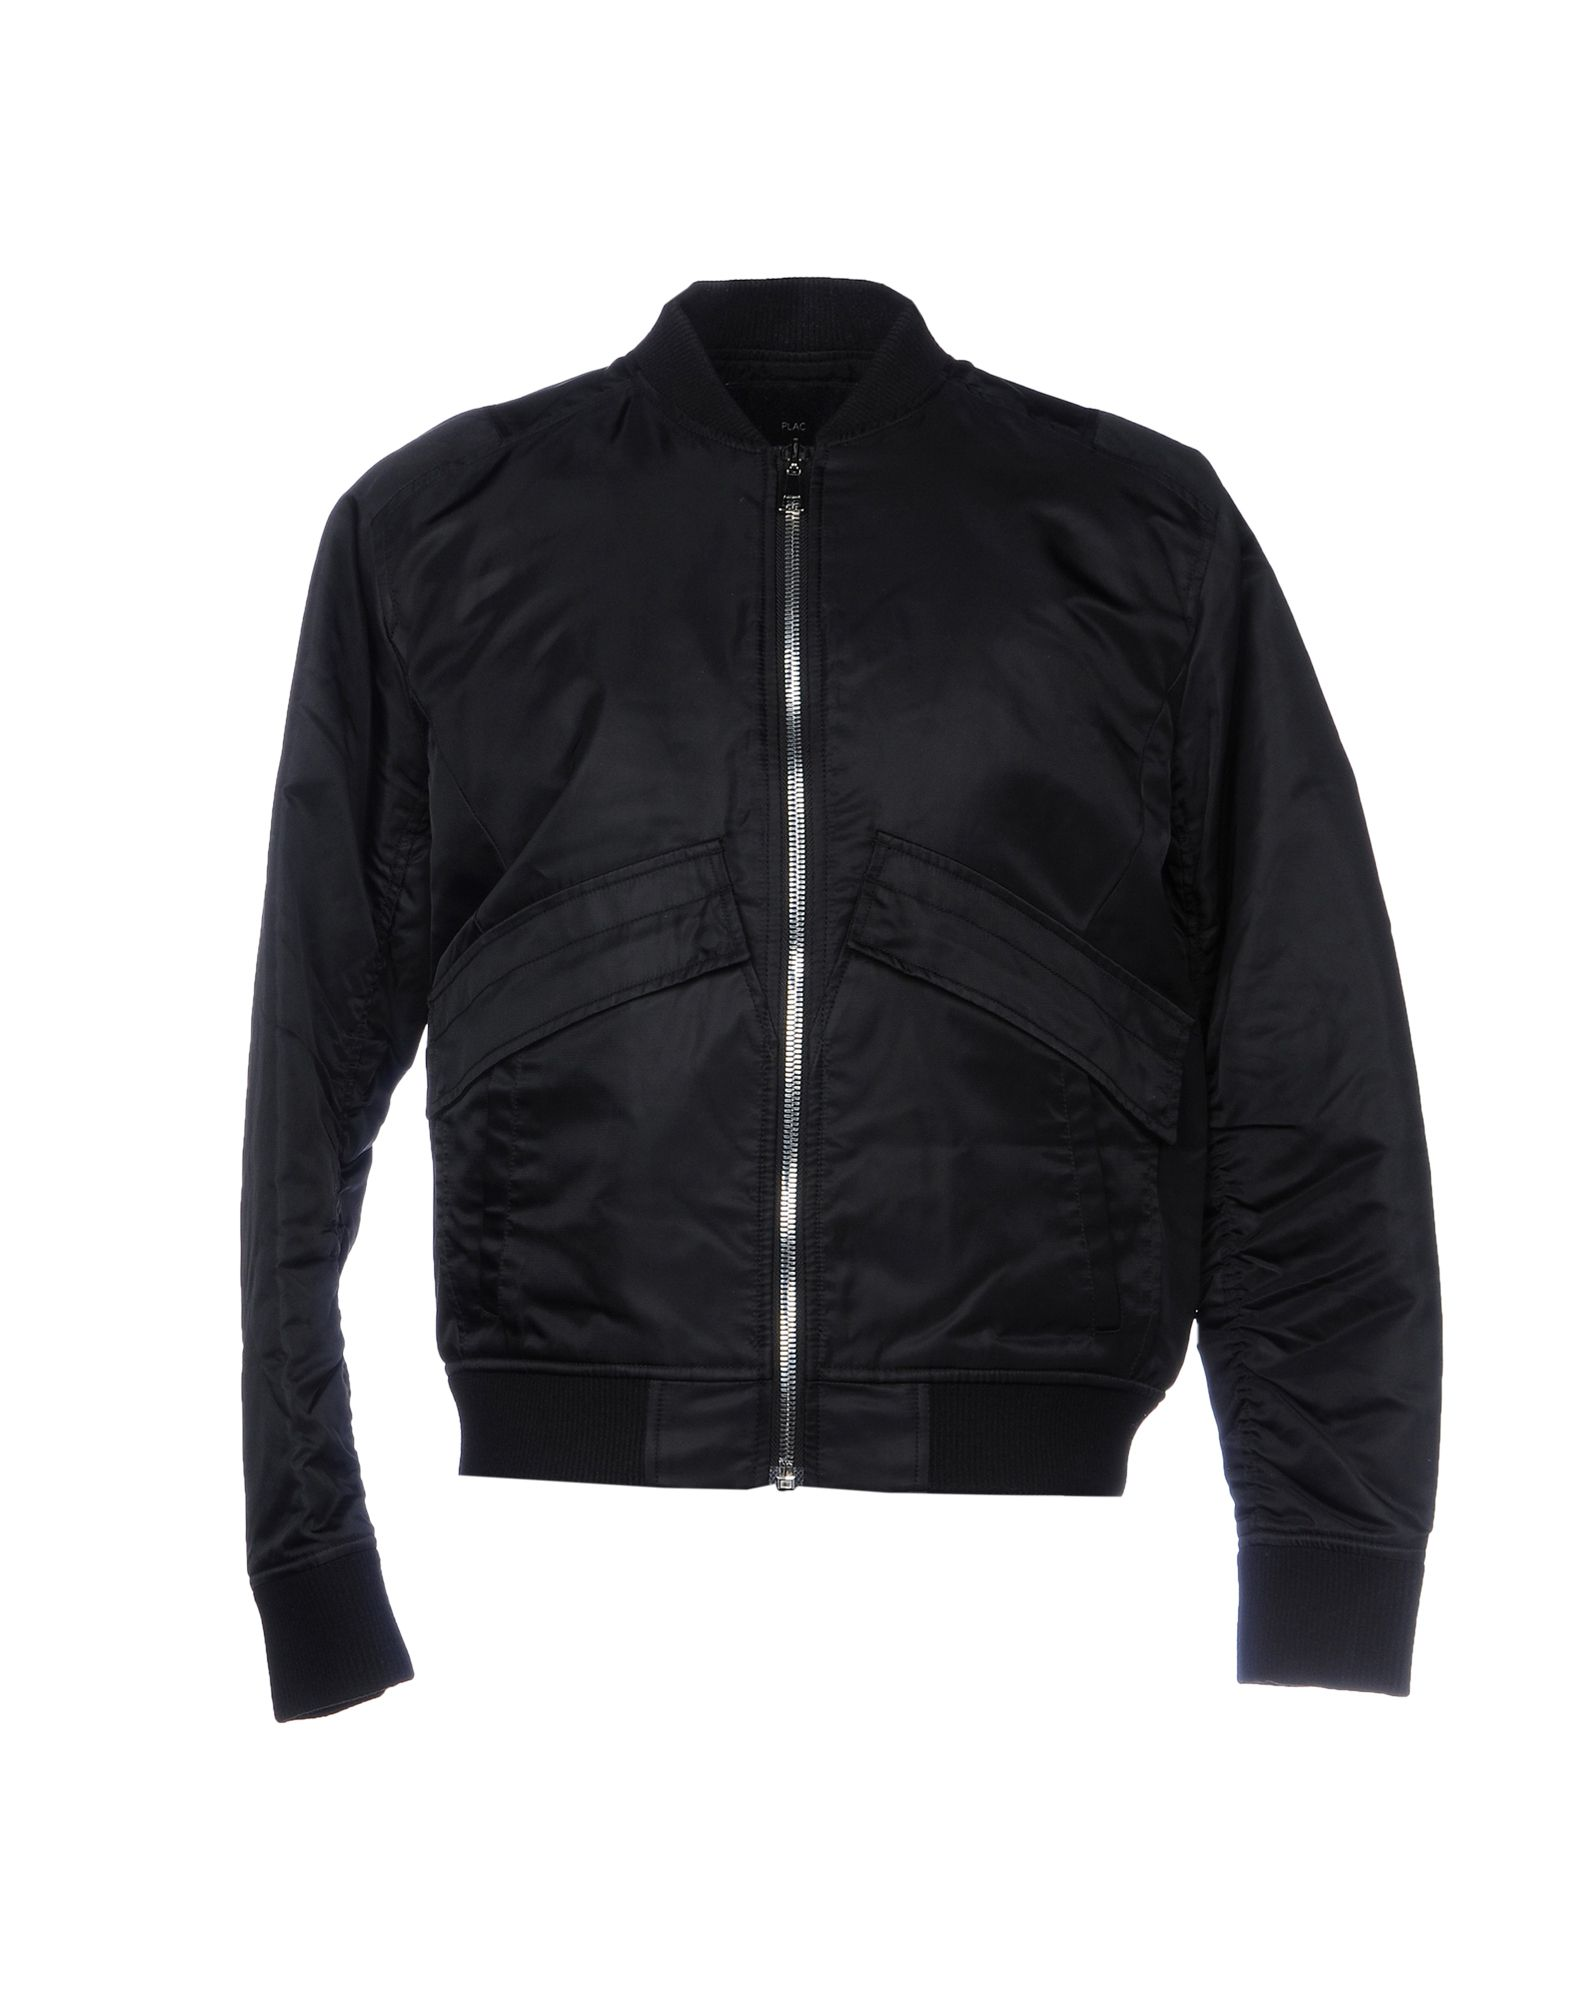 PLAC Bomber in Black